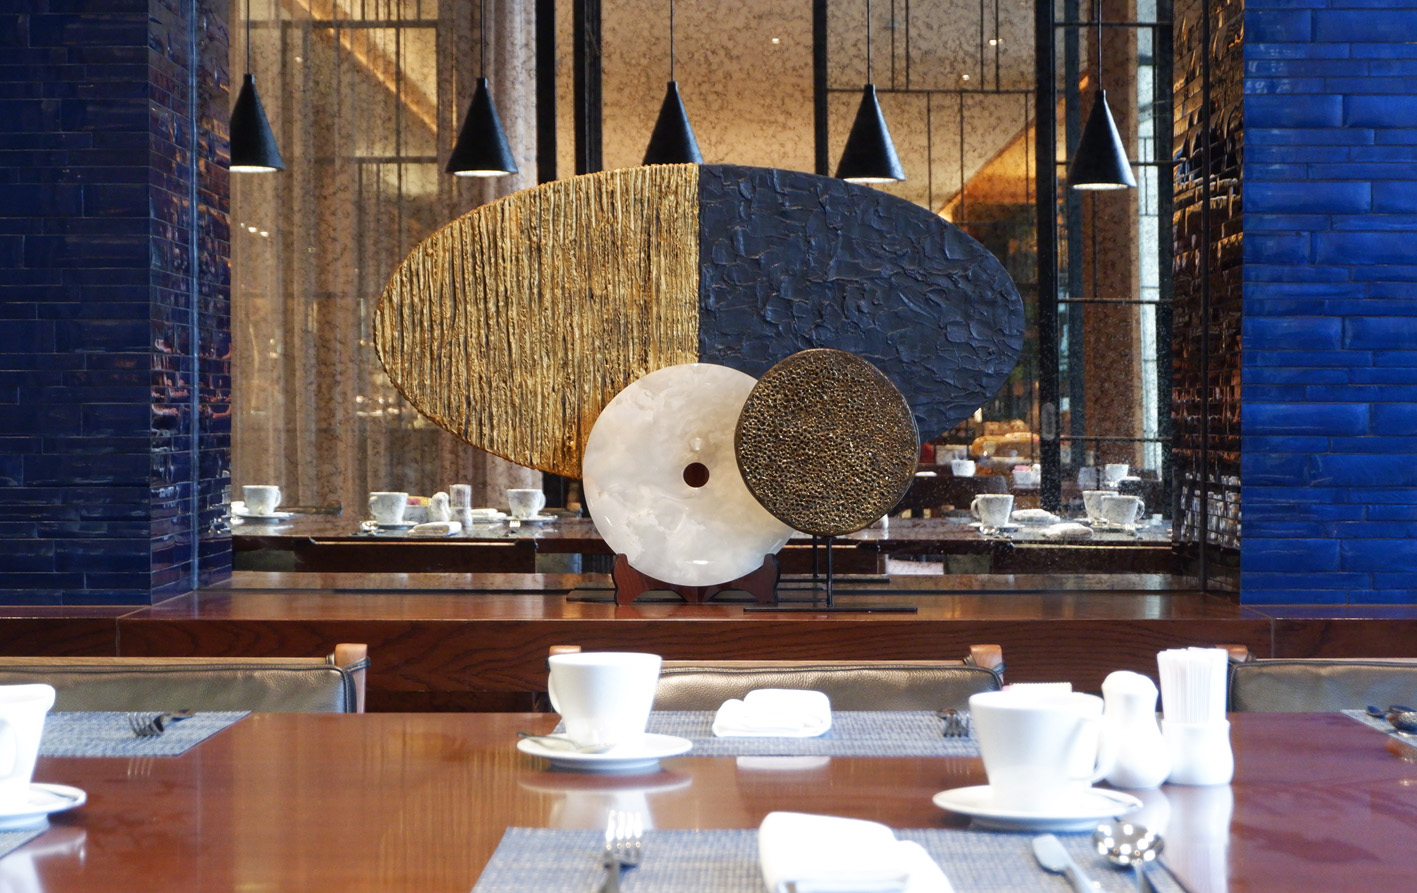 Hilton Danang Dining Sculpture by Hay Hay